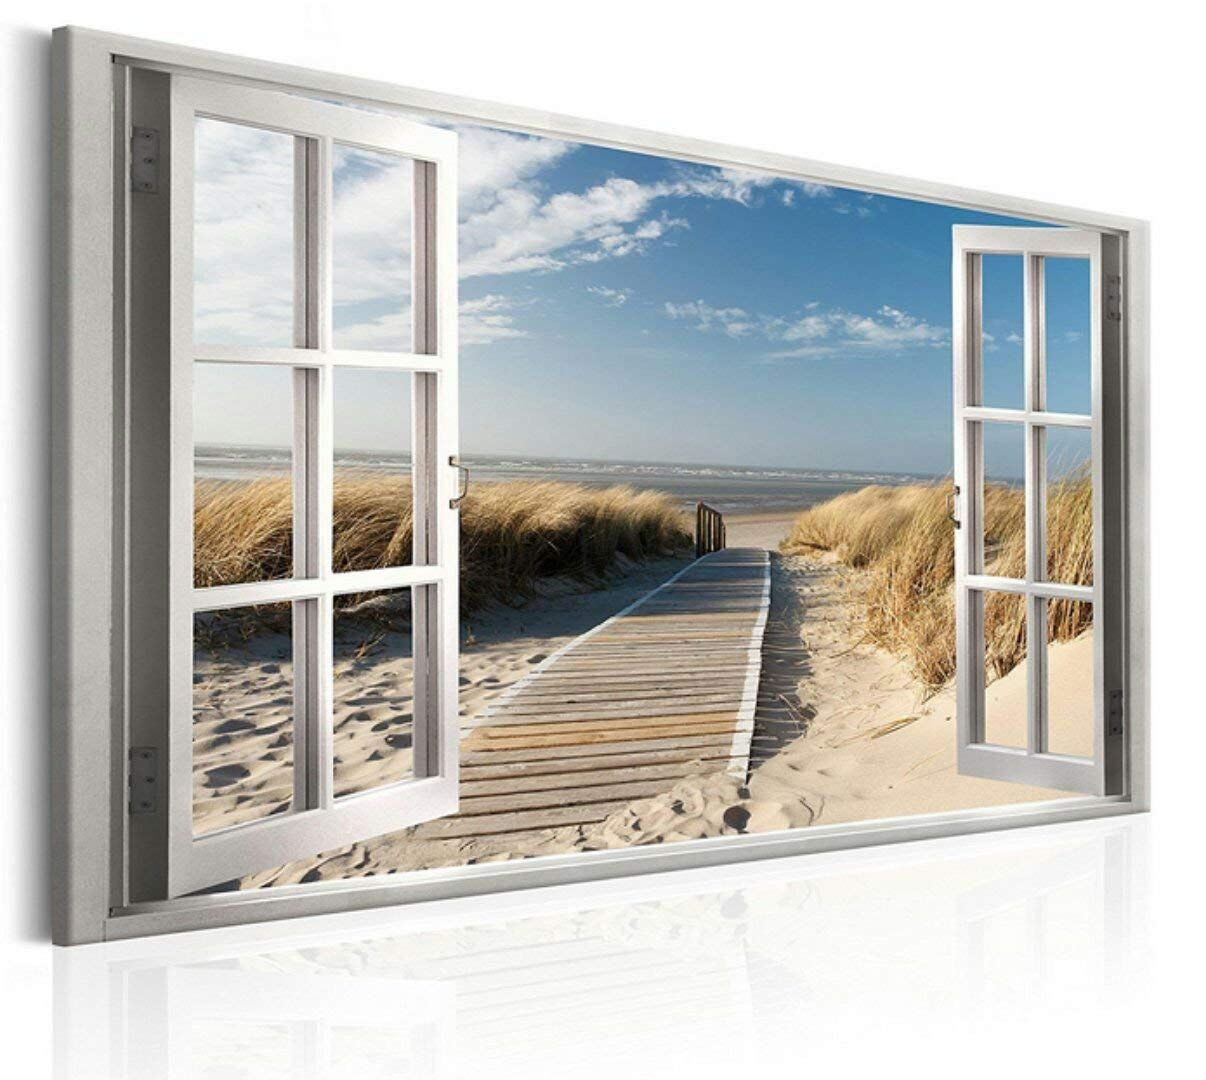 Canvas Prints Wall Art Paintings Beach Scenery Open Window Artwork and Framed Artwork Ready to Hang for Home Decorations Wall Decor(24inchx48inch) - PERFECT CANVAS ART: good idea for home interior walls decor such as living room, bedroom, kitchen, bathroom, guest room, office and others EASY TO HANG: each panel of canvas prints already stretched on solid wooden frames, gallery wrapped, with hooks and accessories, ready to hang. size:24inchx48inch(60cmx120cm) - wall-art, living-room-decor, living-room - 61PrWuAPPlL -